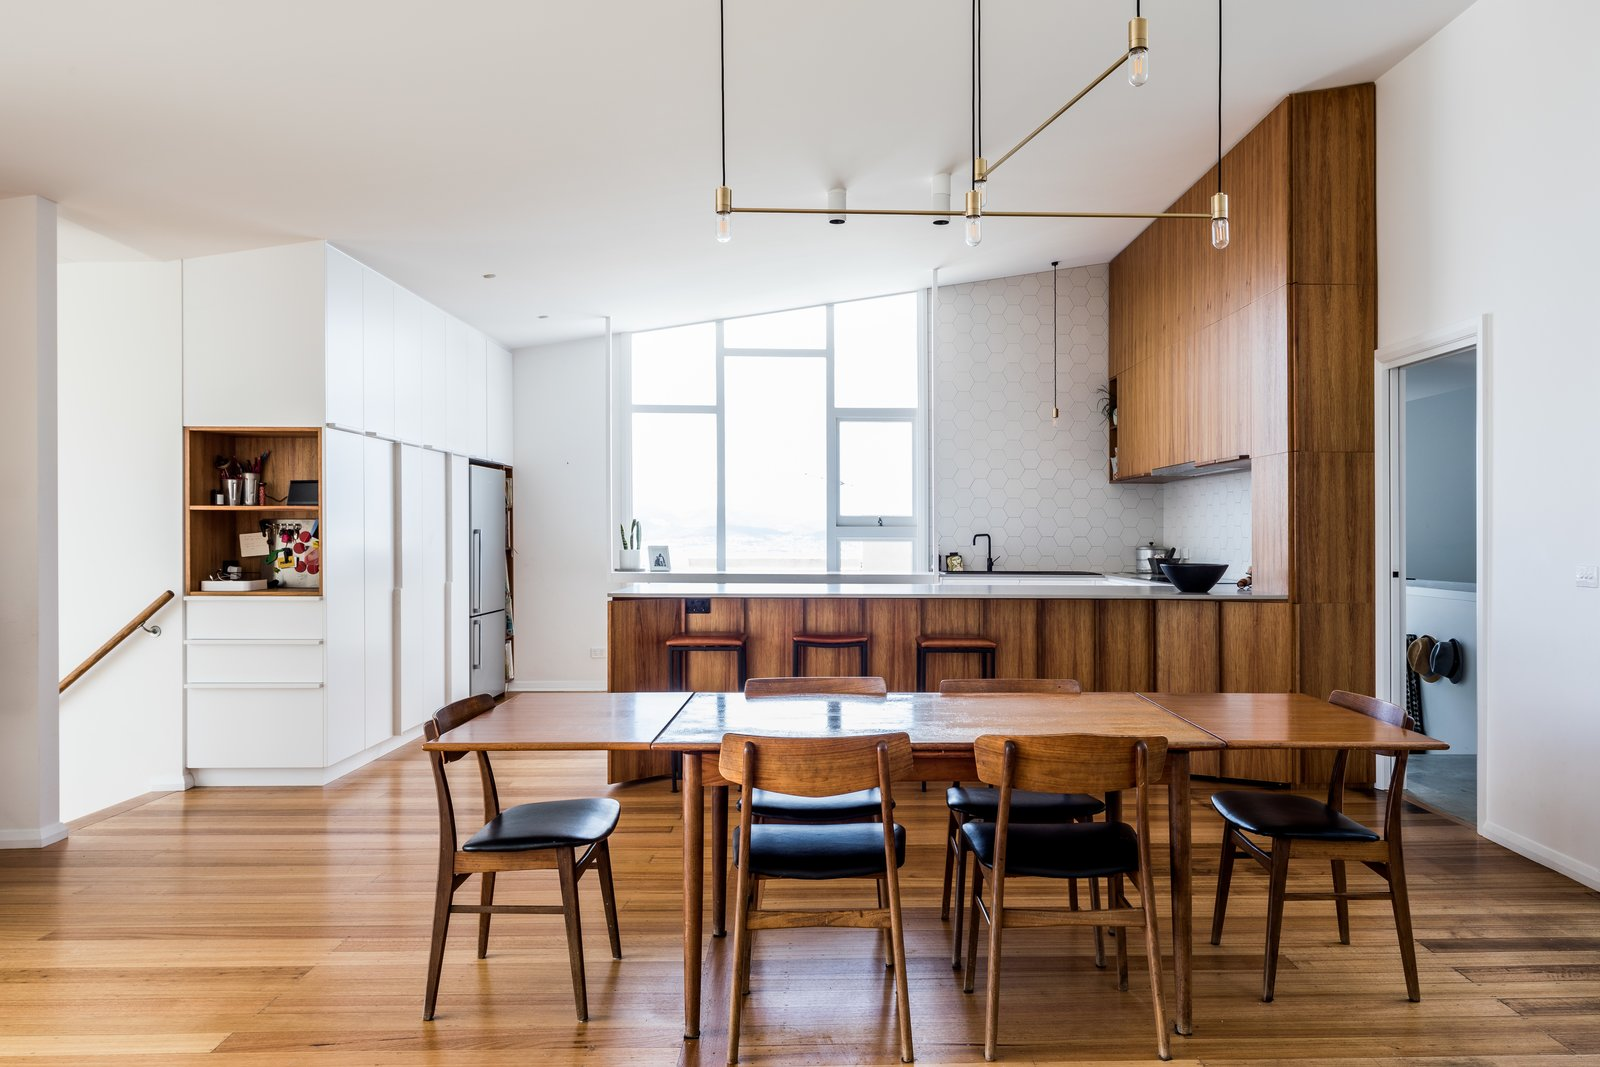 The architects gently reworked the interior layout, replacing a small sitting room and bath/laundry with a new kitchen. The kitchen's wood cabinetry